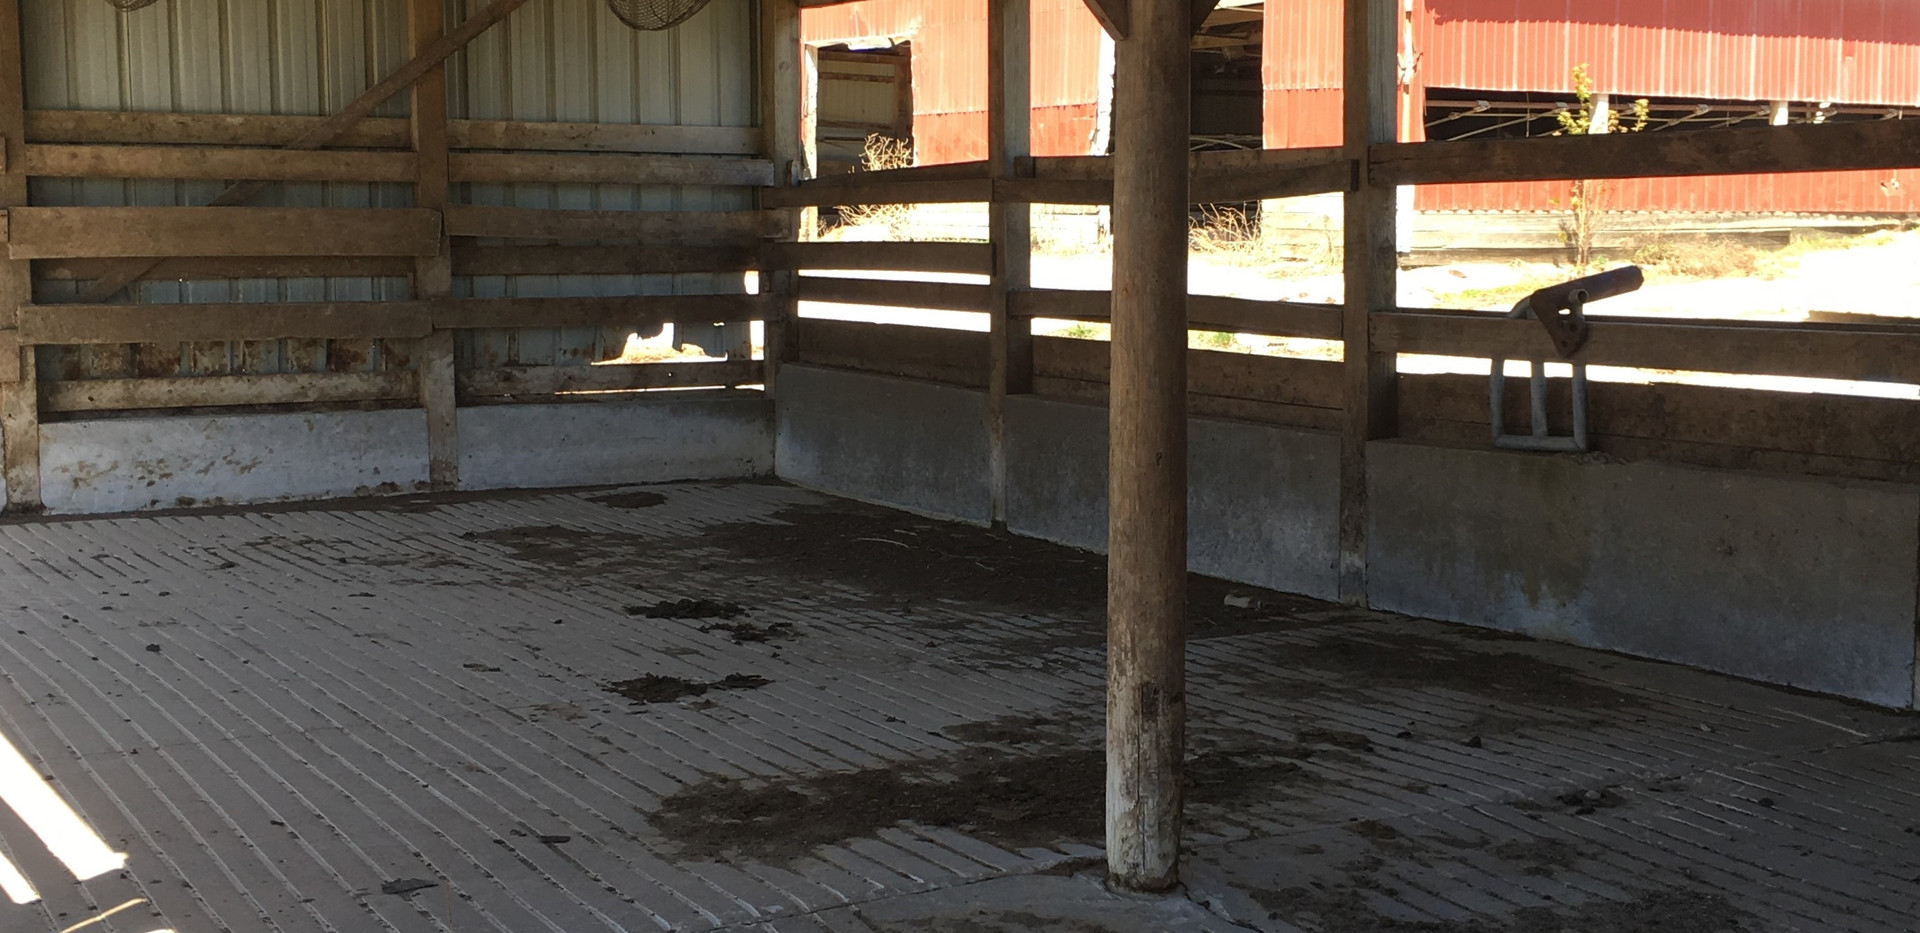 w39-26114 Cattle Shed Inside 2.jpg